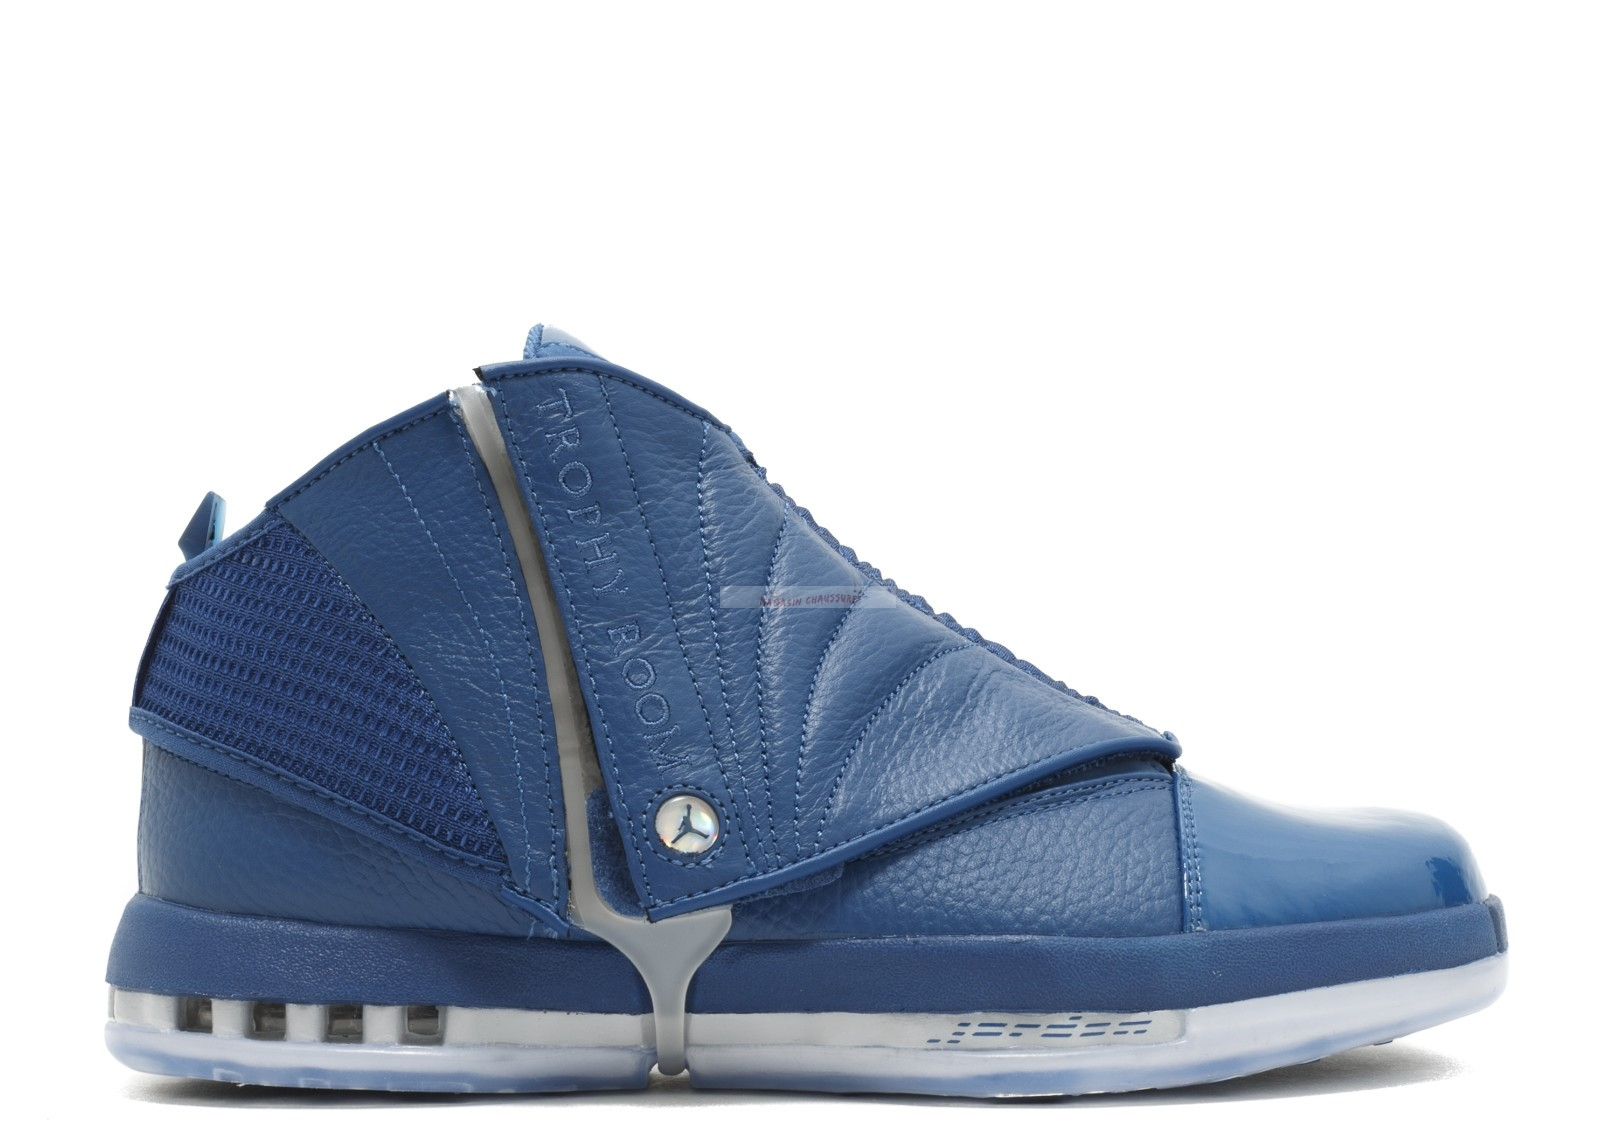 "Air Jordan 16 Retro Trophy Rm ""Trophy Room"" Bleu (854255-416) Chaussure de Basket"